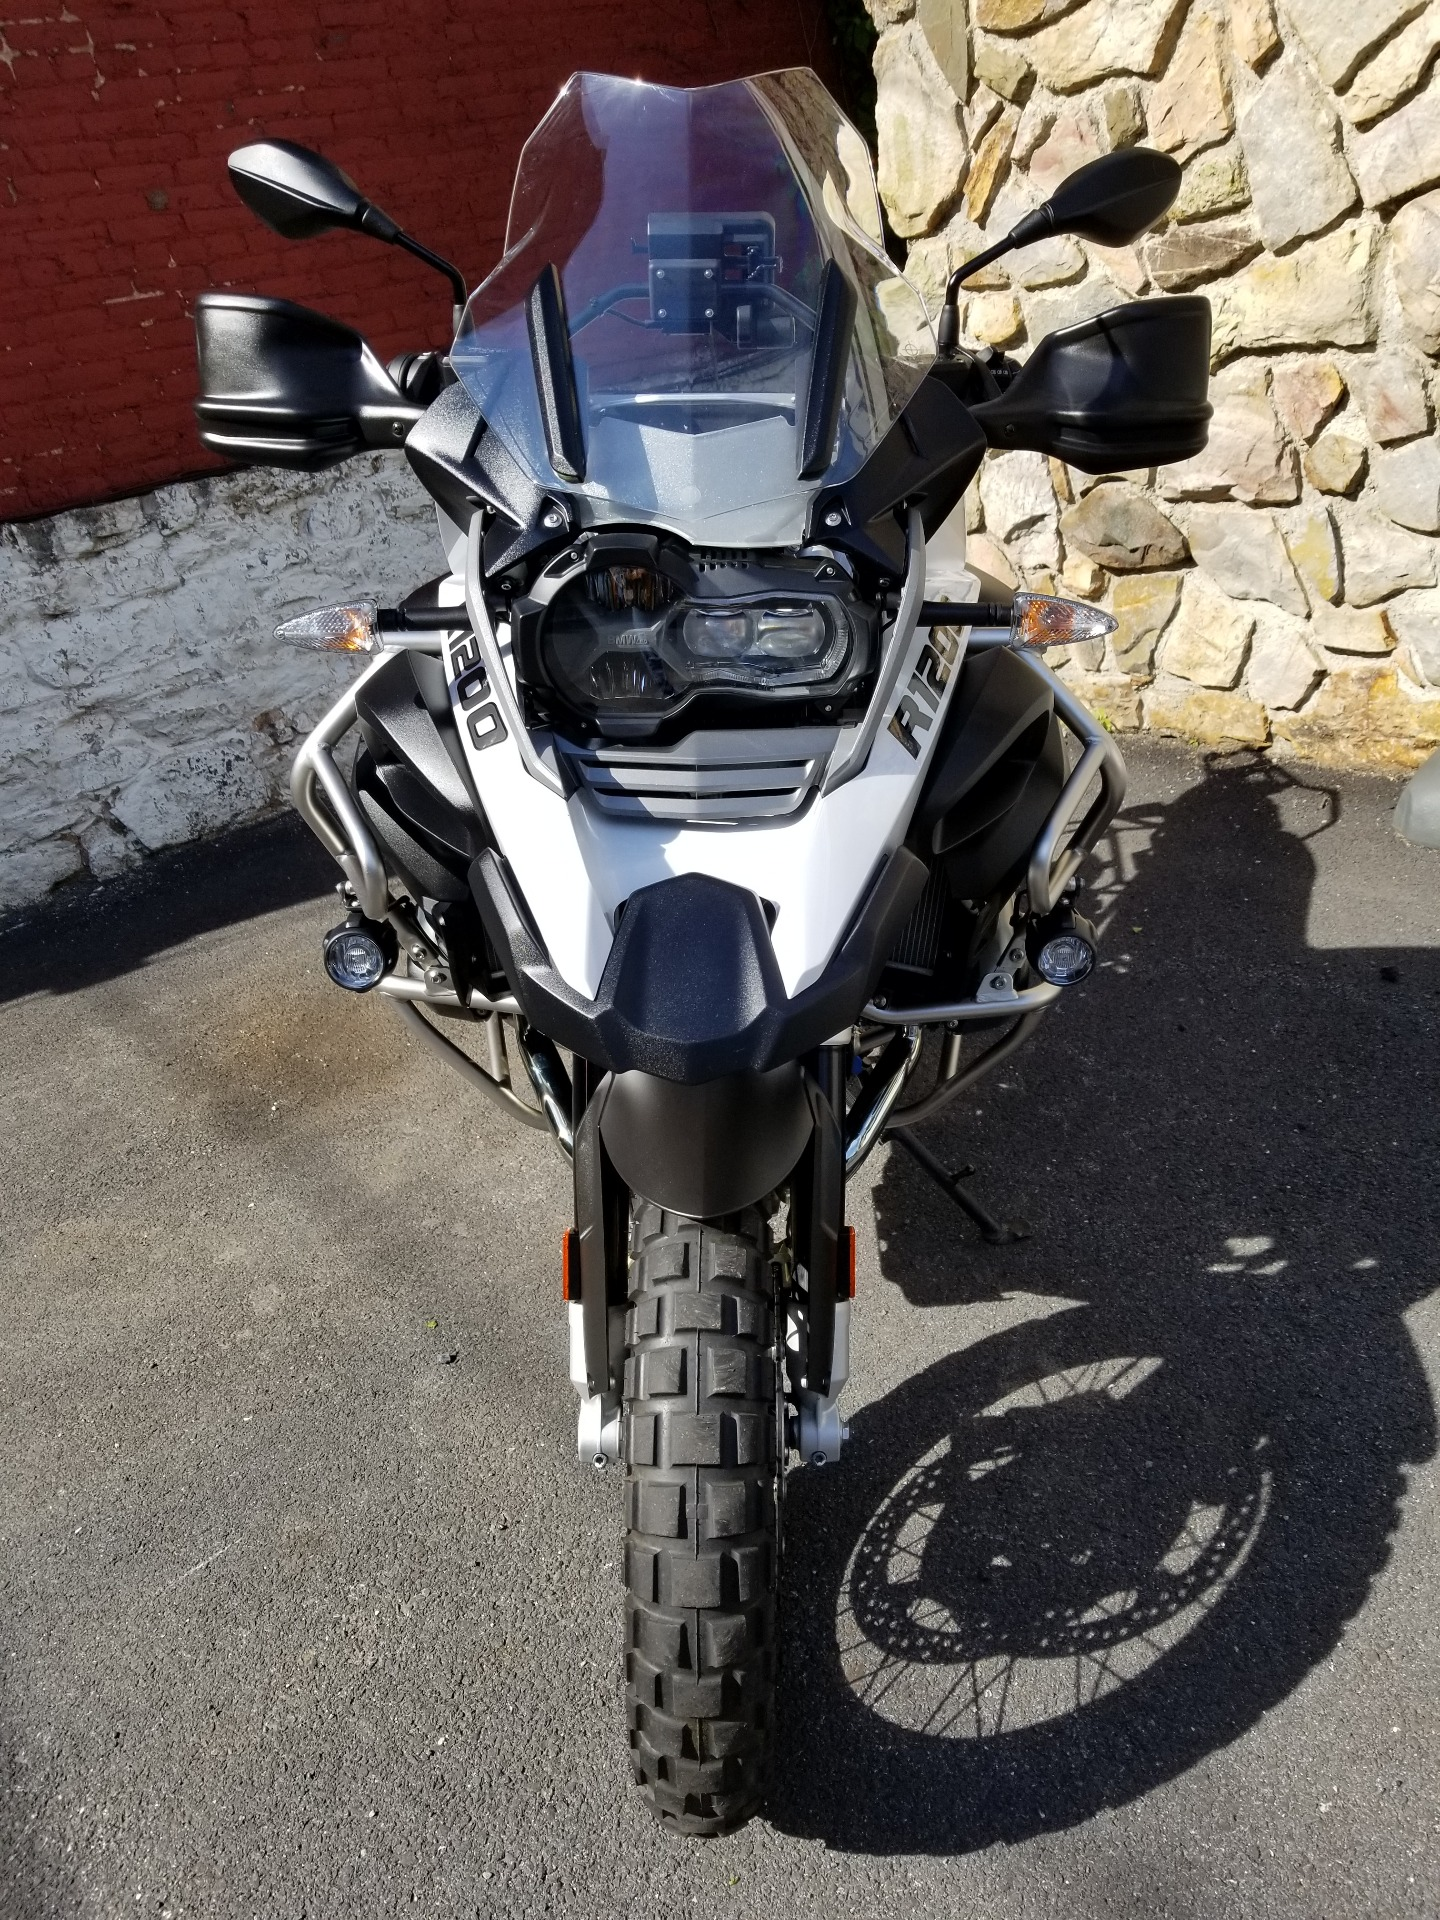 2018 BMW R 1200 GS Adventure in Port Clinton, Pennsylvania - Photo 3